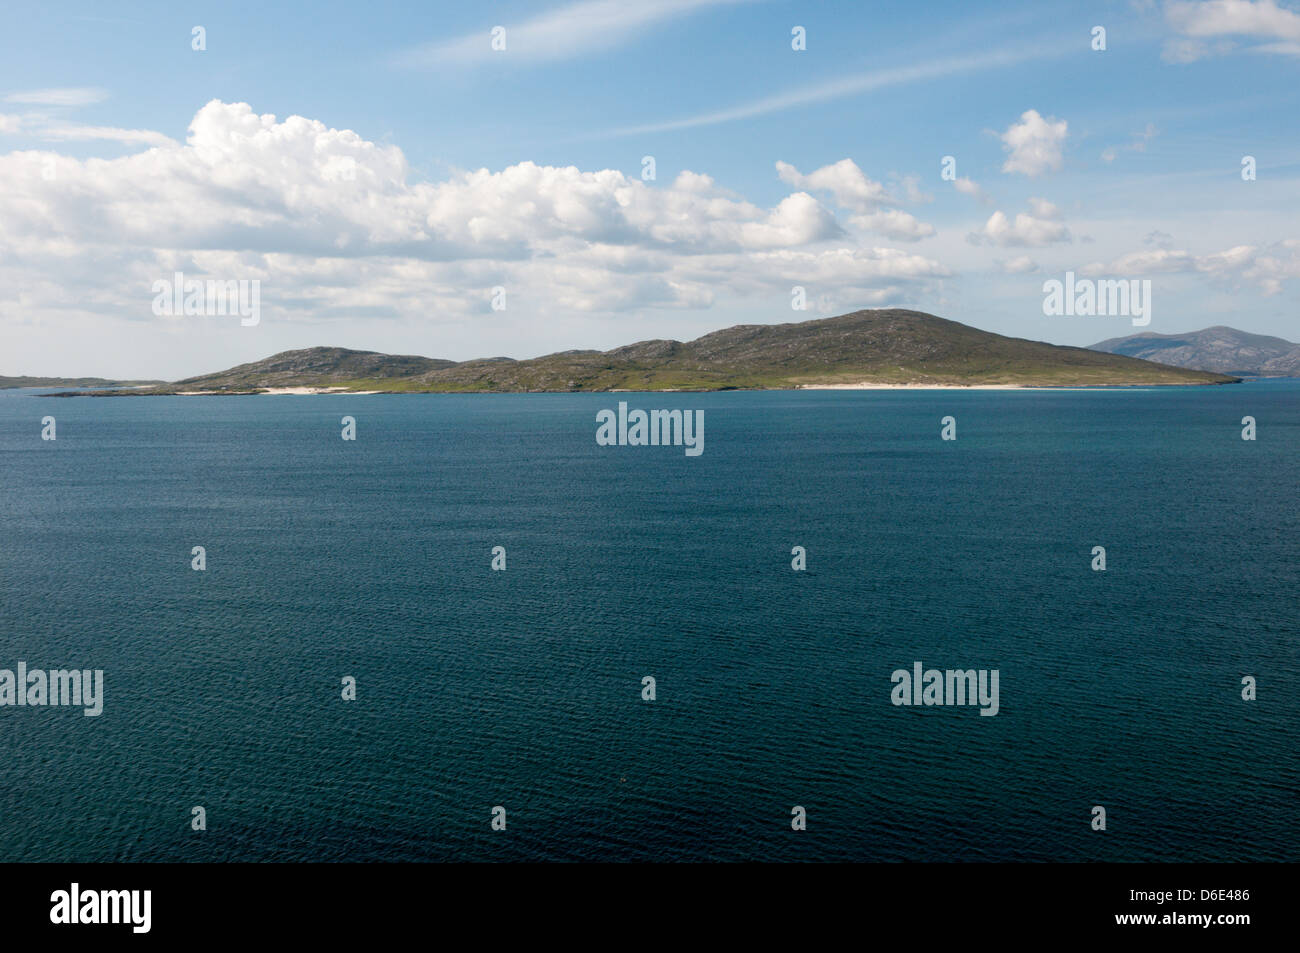 The island of Taransay seen across the Sound of Taransay from South Harris in the Outer Hebrides. Stock Photo